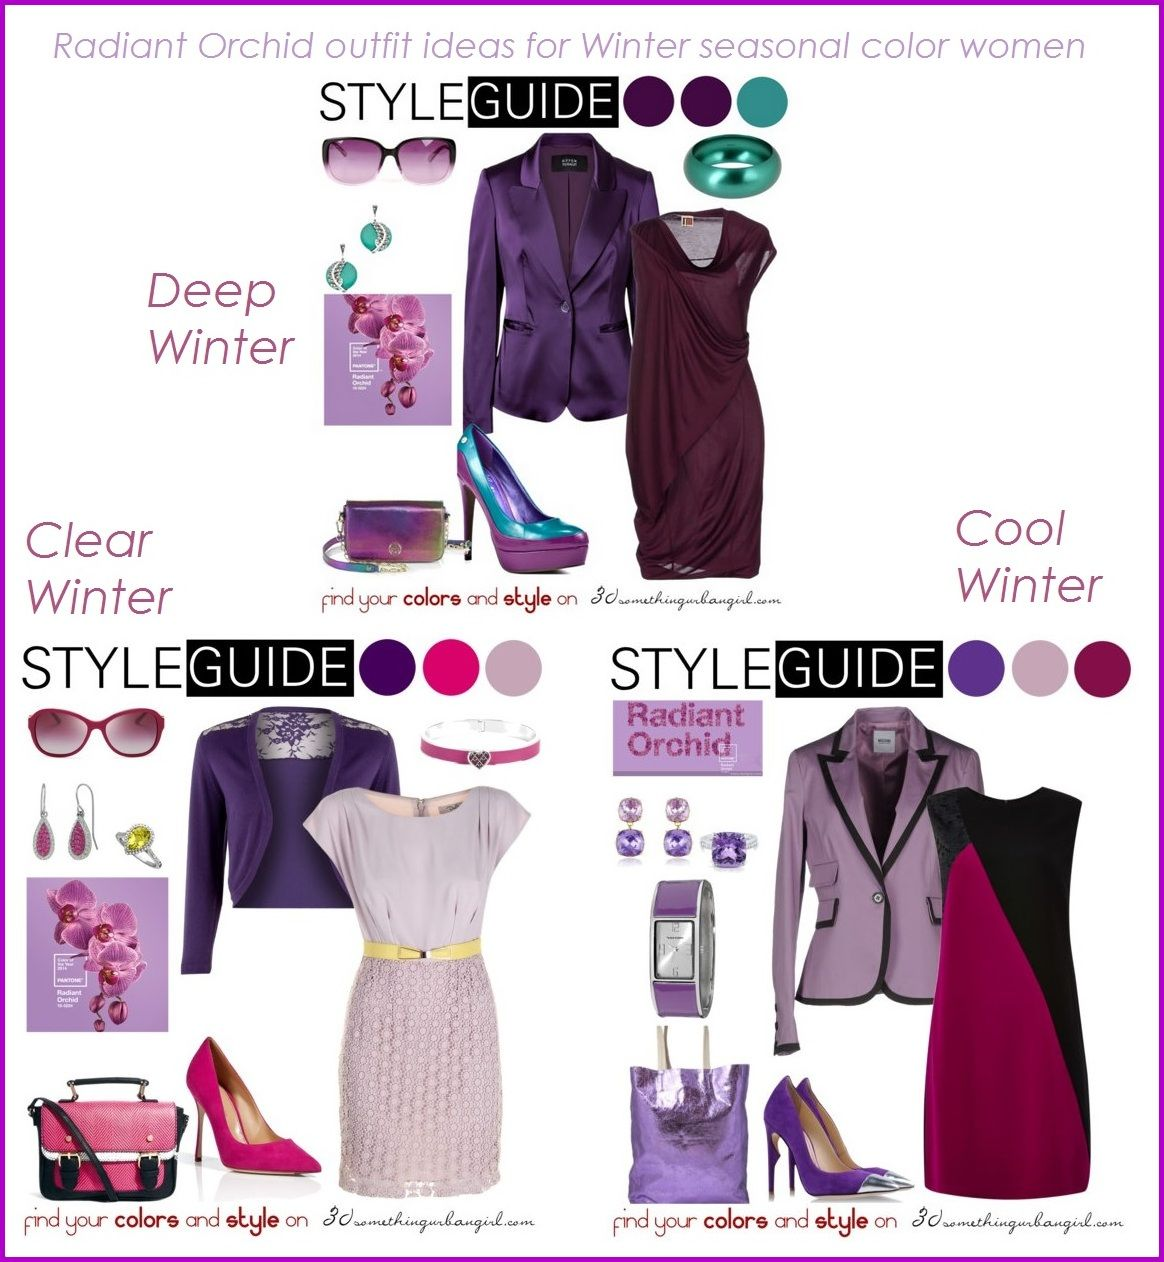 e9b48d3e4ff9 Radiant Orchid outfit ideas for every seasonal color women